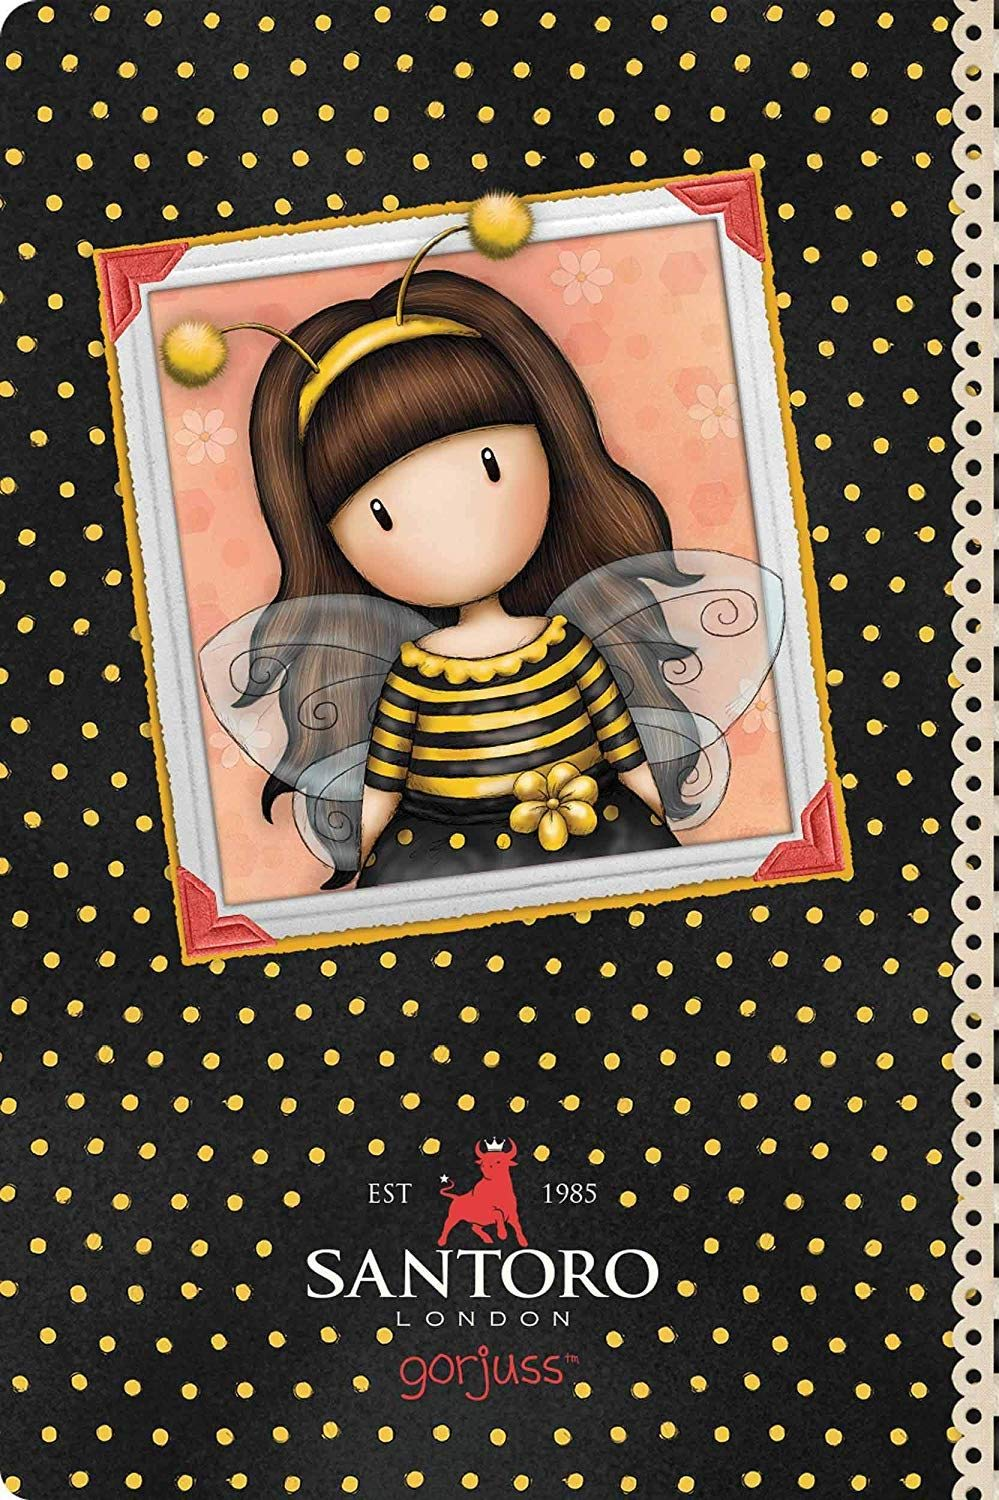 Santoro Gorjuss Bee Loved 2019 Journal de poche: Amazon.es: Oficina y papelería